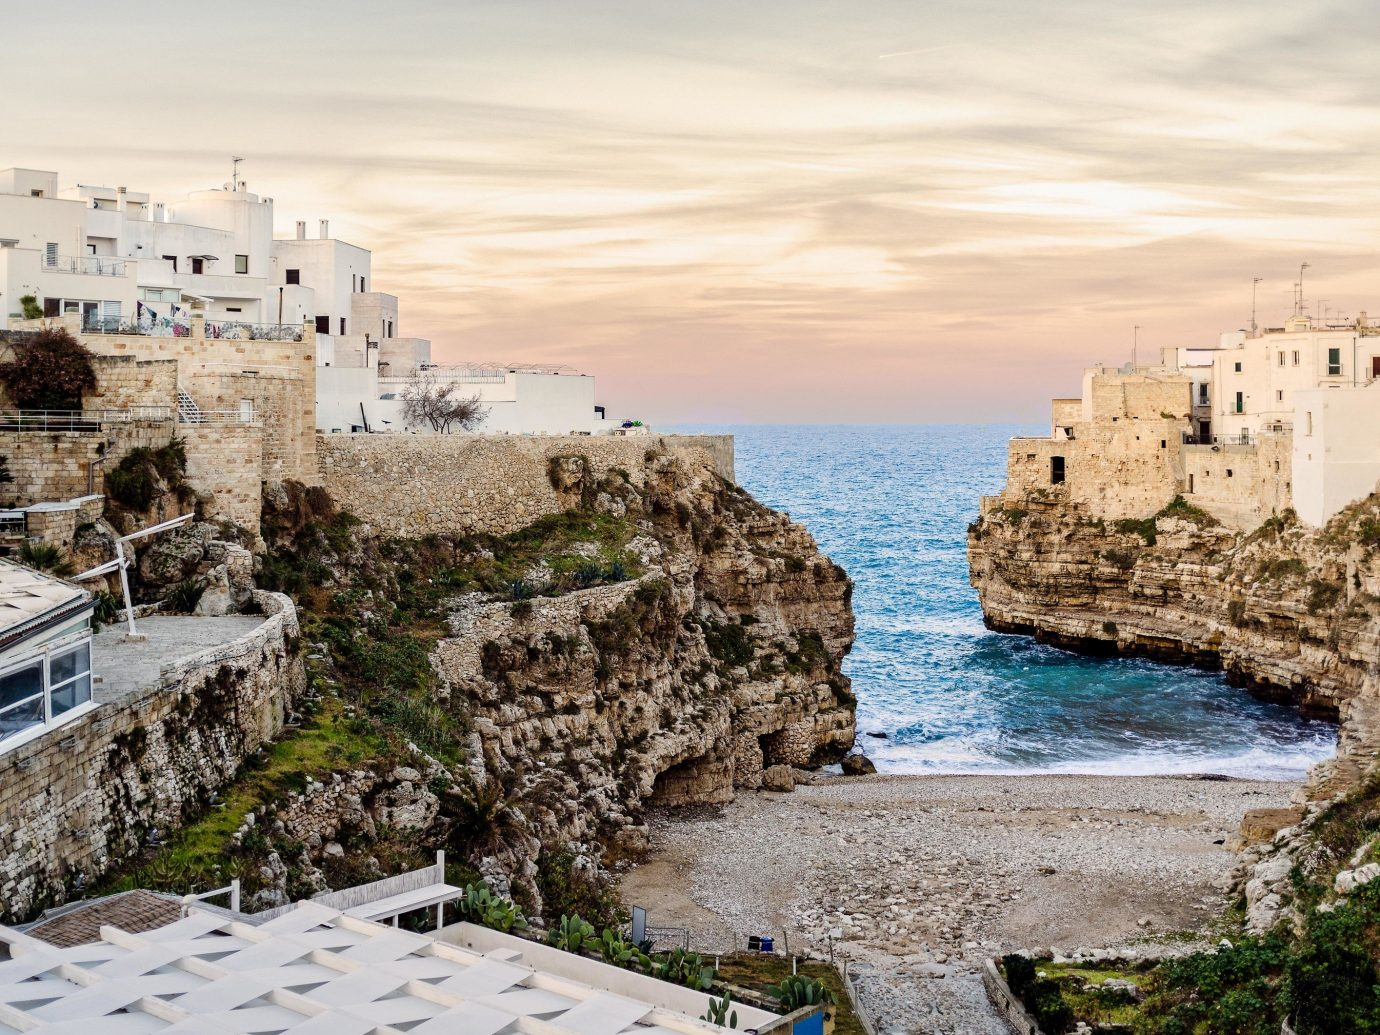 europe Italy Off-the-beaten Path Trip Ideas Sea sky Coast water shore tourism terrain Ocean coastal and oceanic landforms City building cliff rock